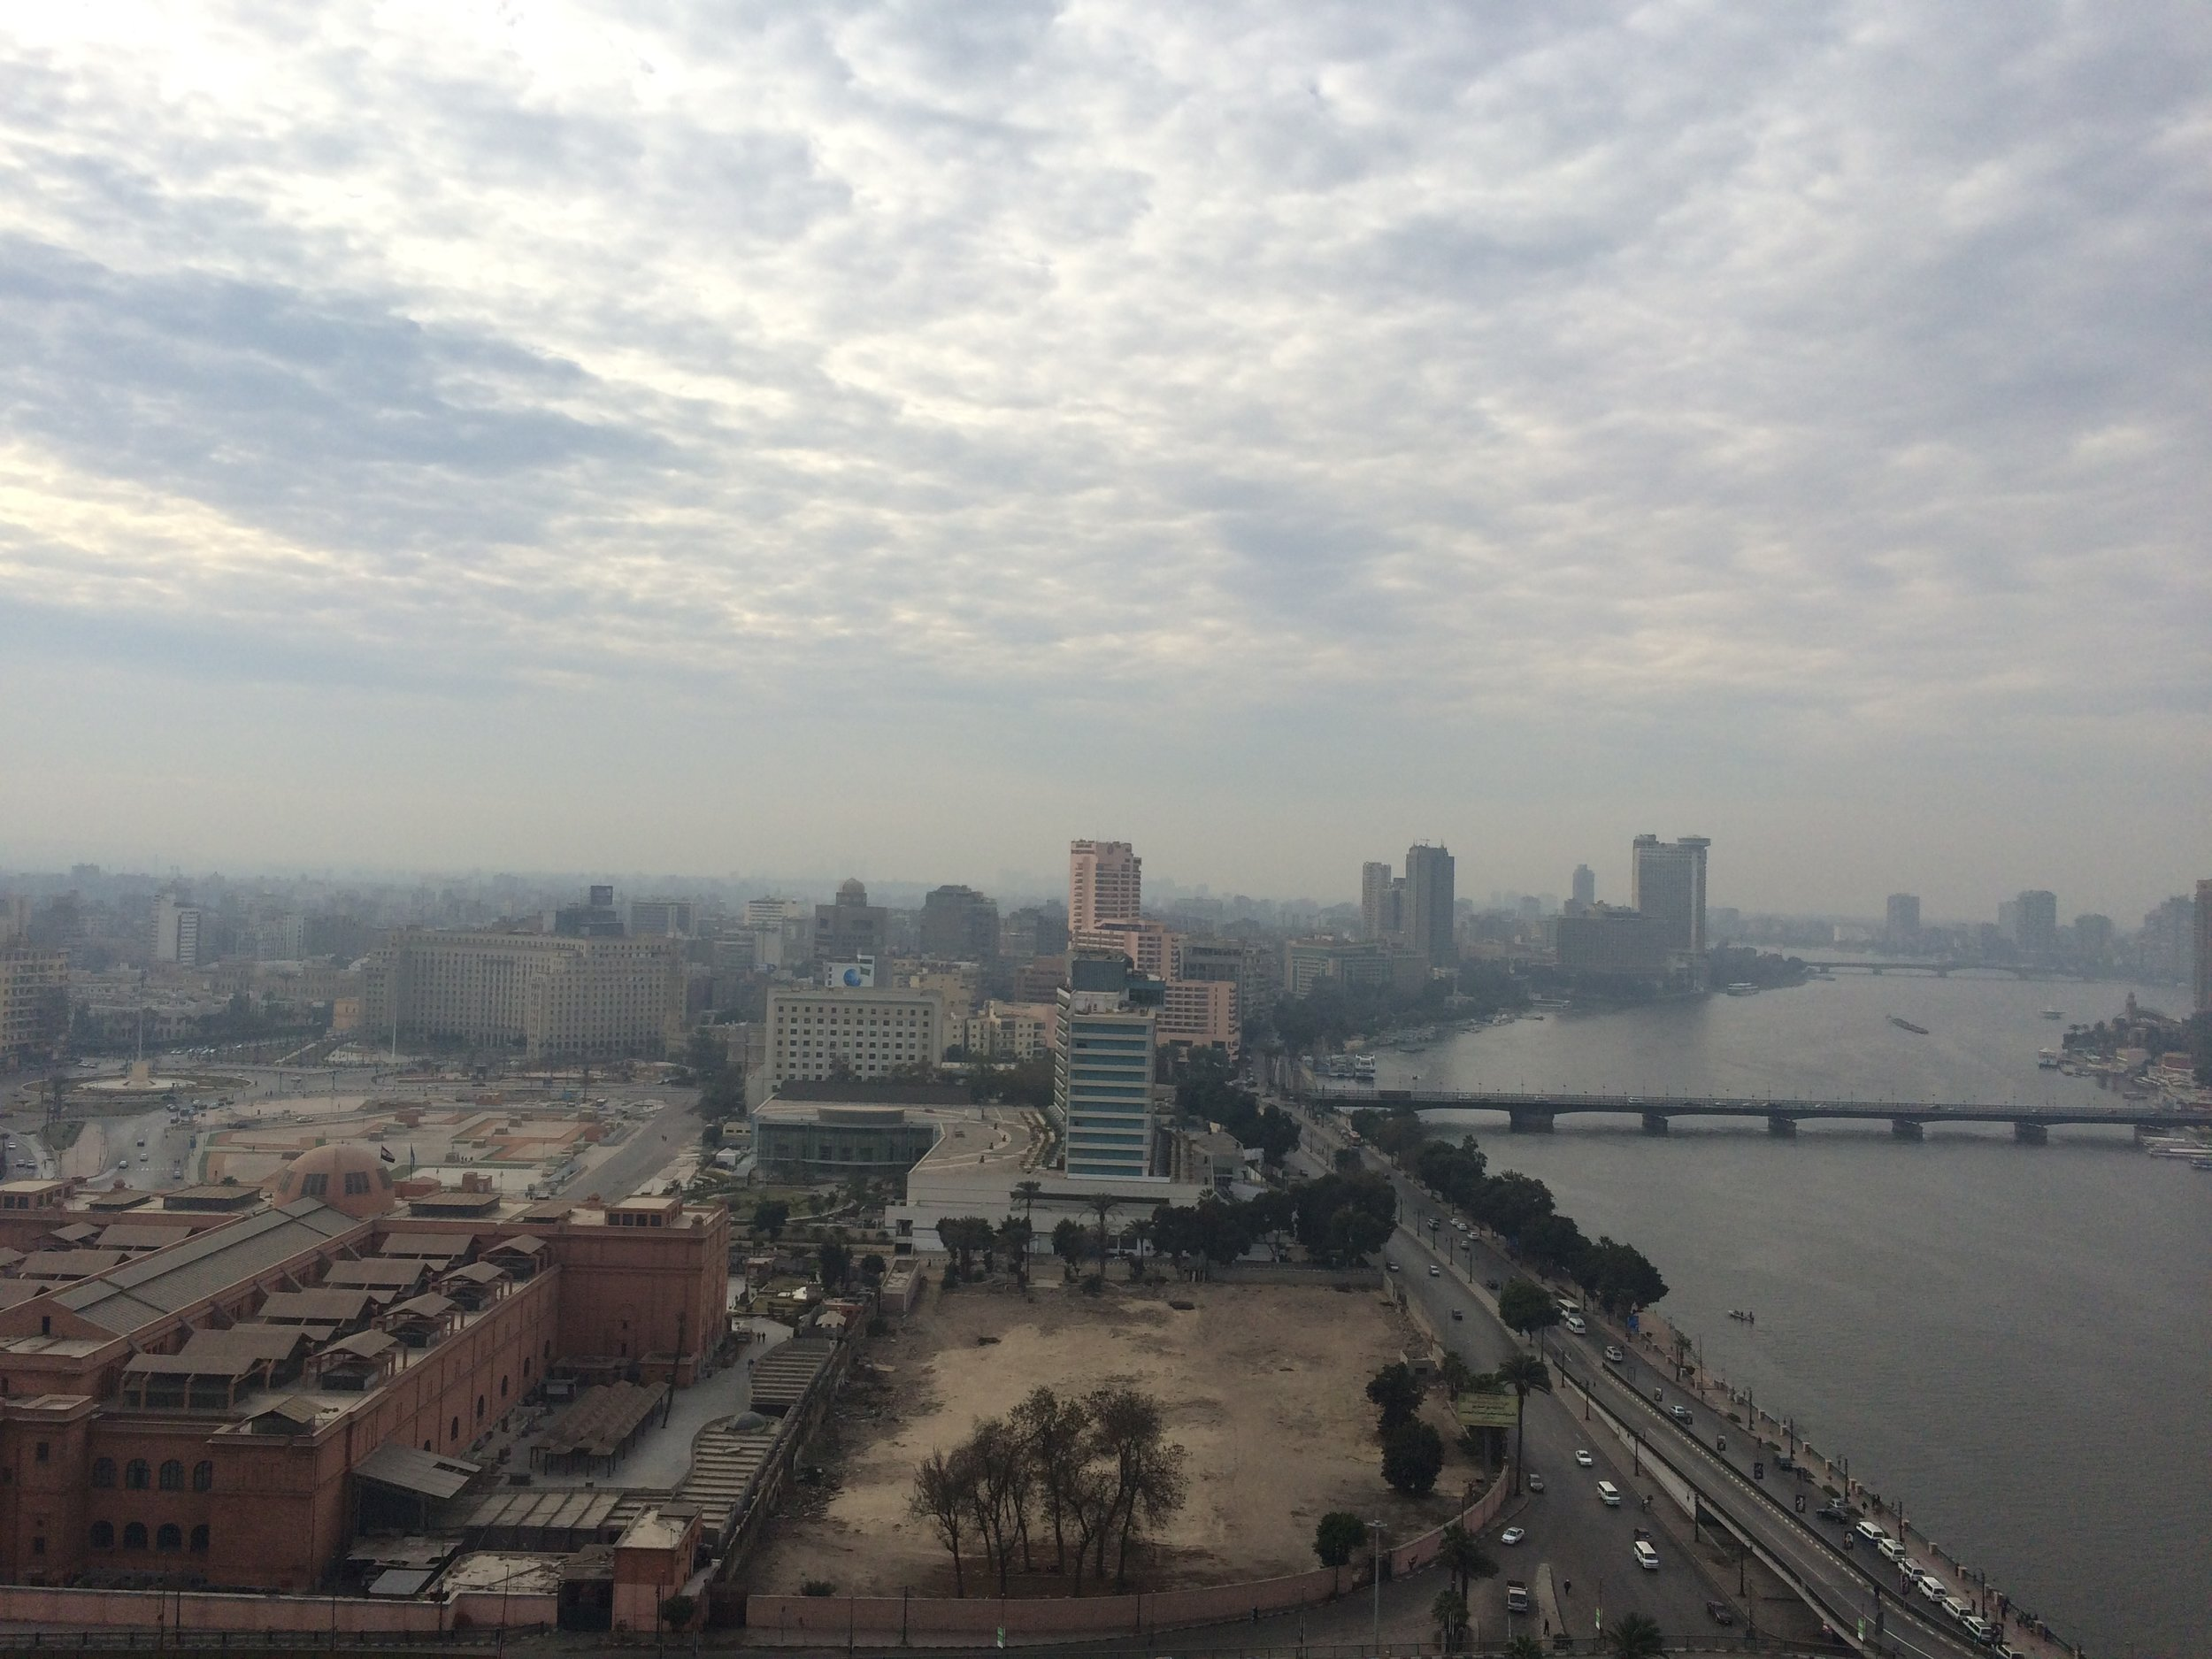 Day view of Nile